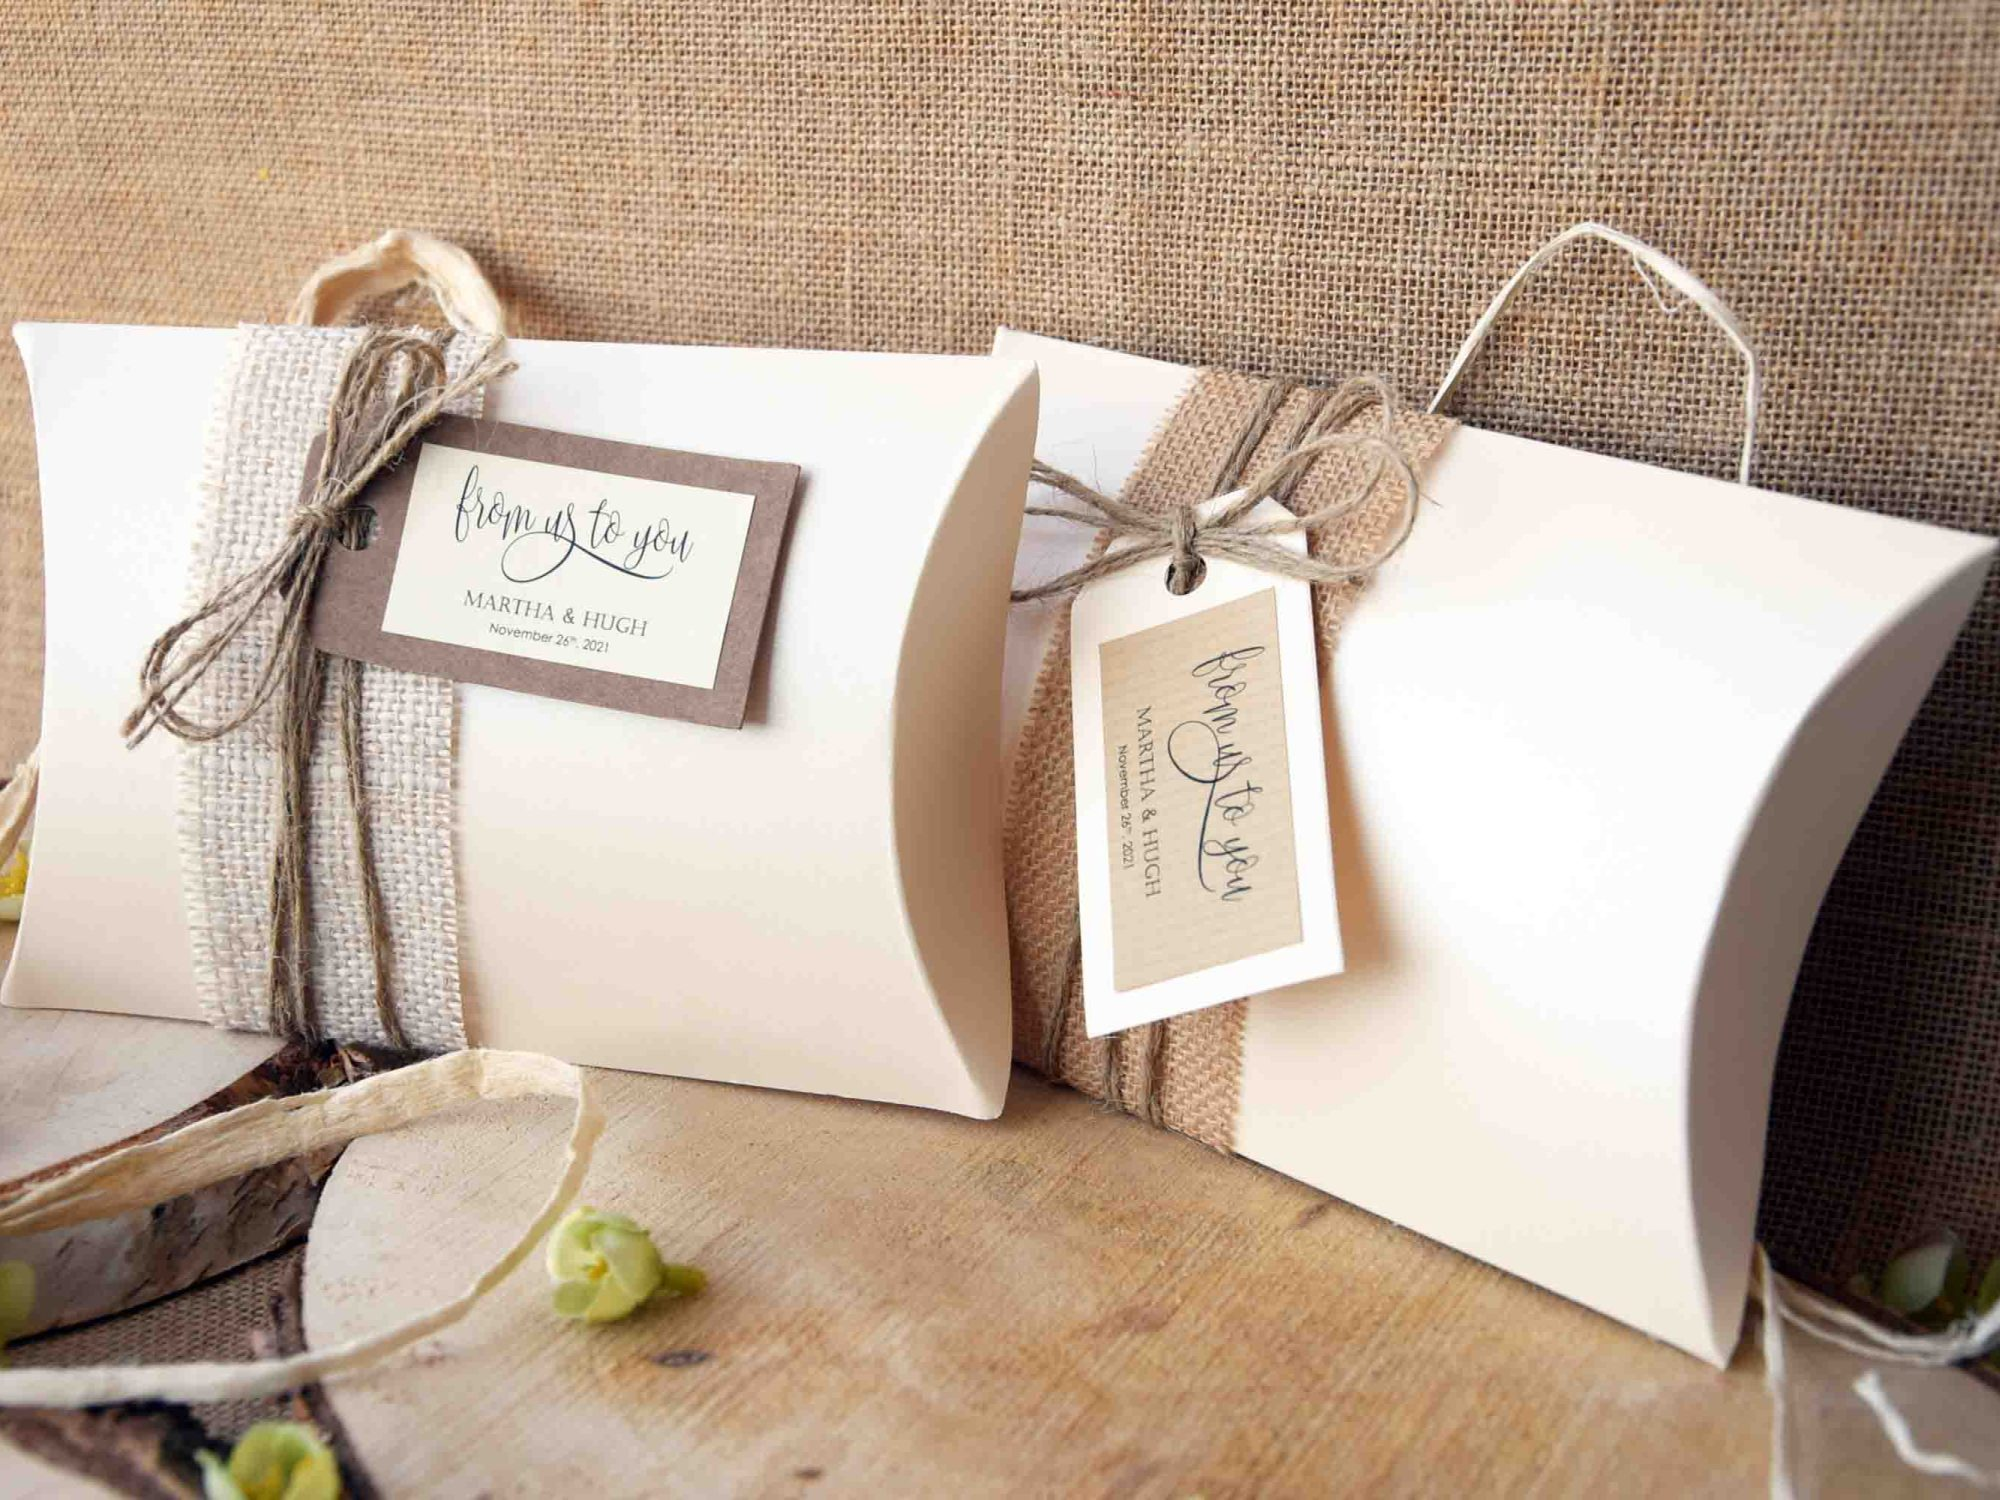 Rectangular or Square Ivory Pillow Boxes #pillowboxes #favorpillowboxes #largepillowboxes #rusticfavorboxes #favorboxes